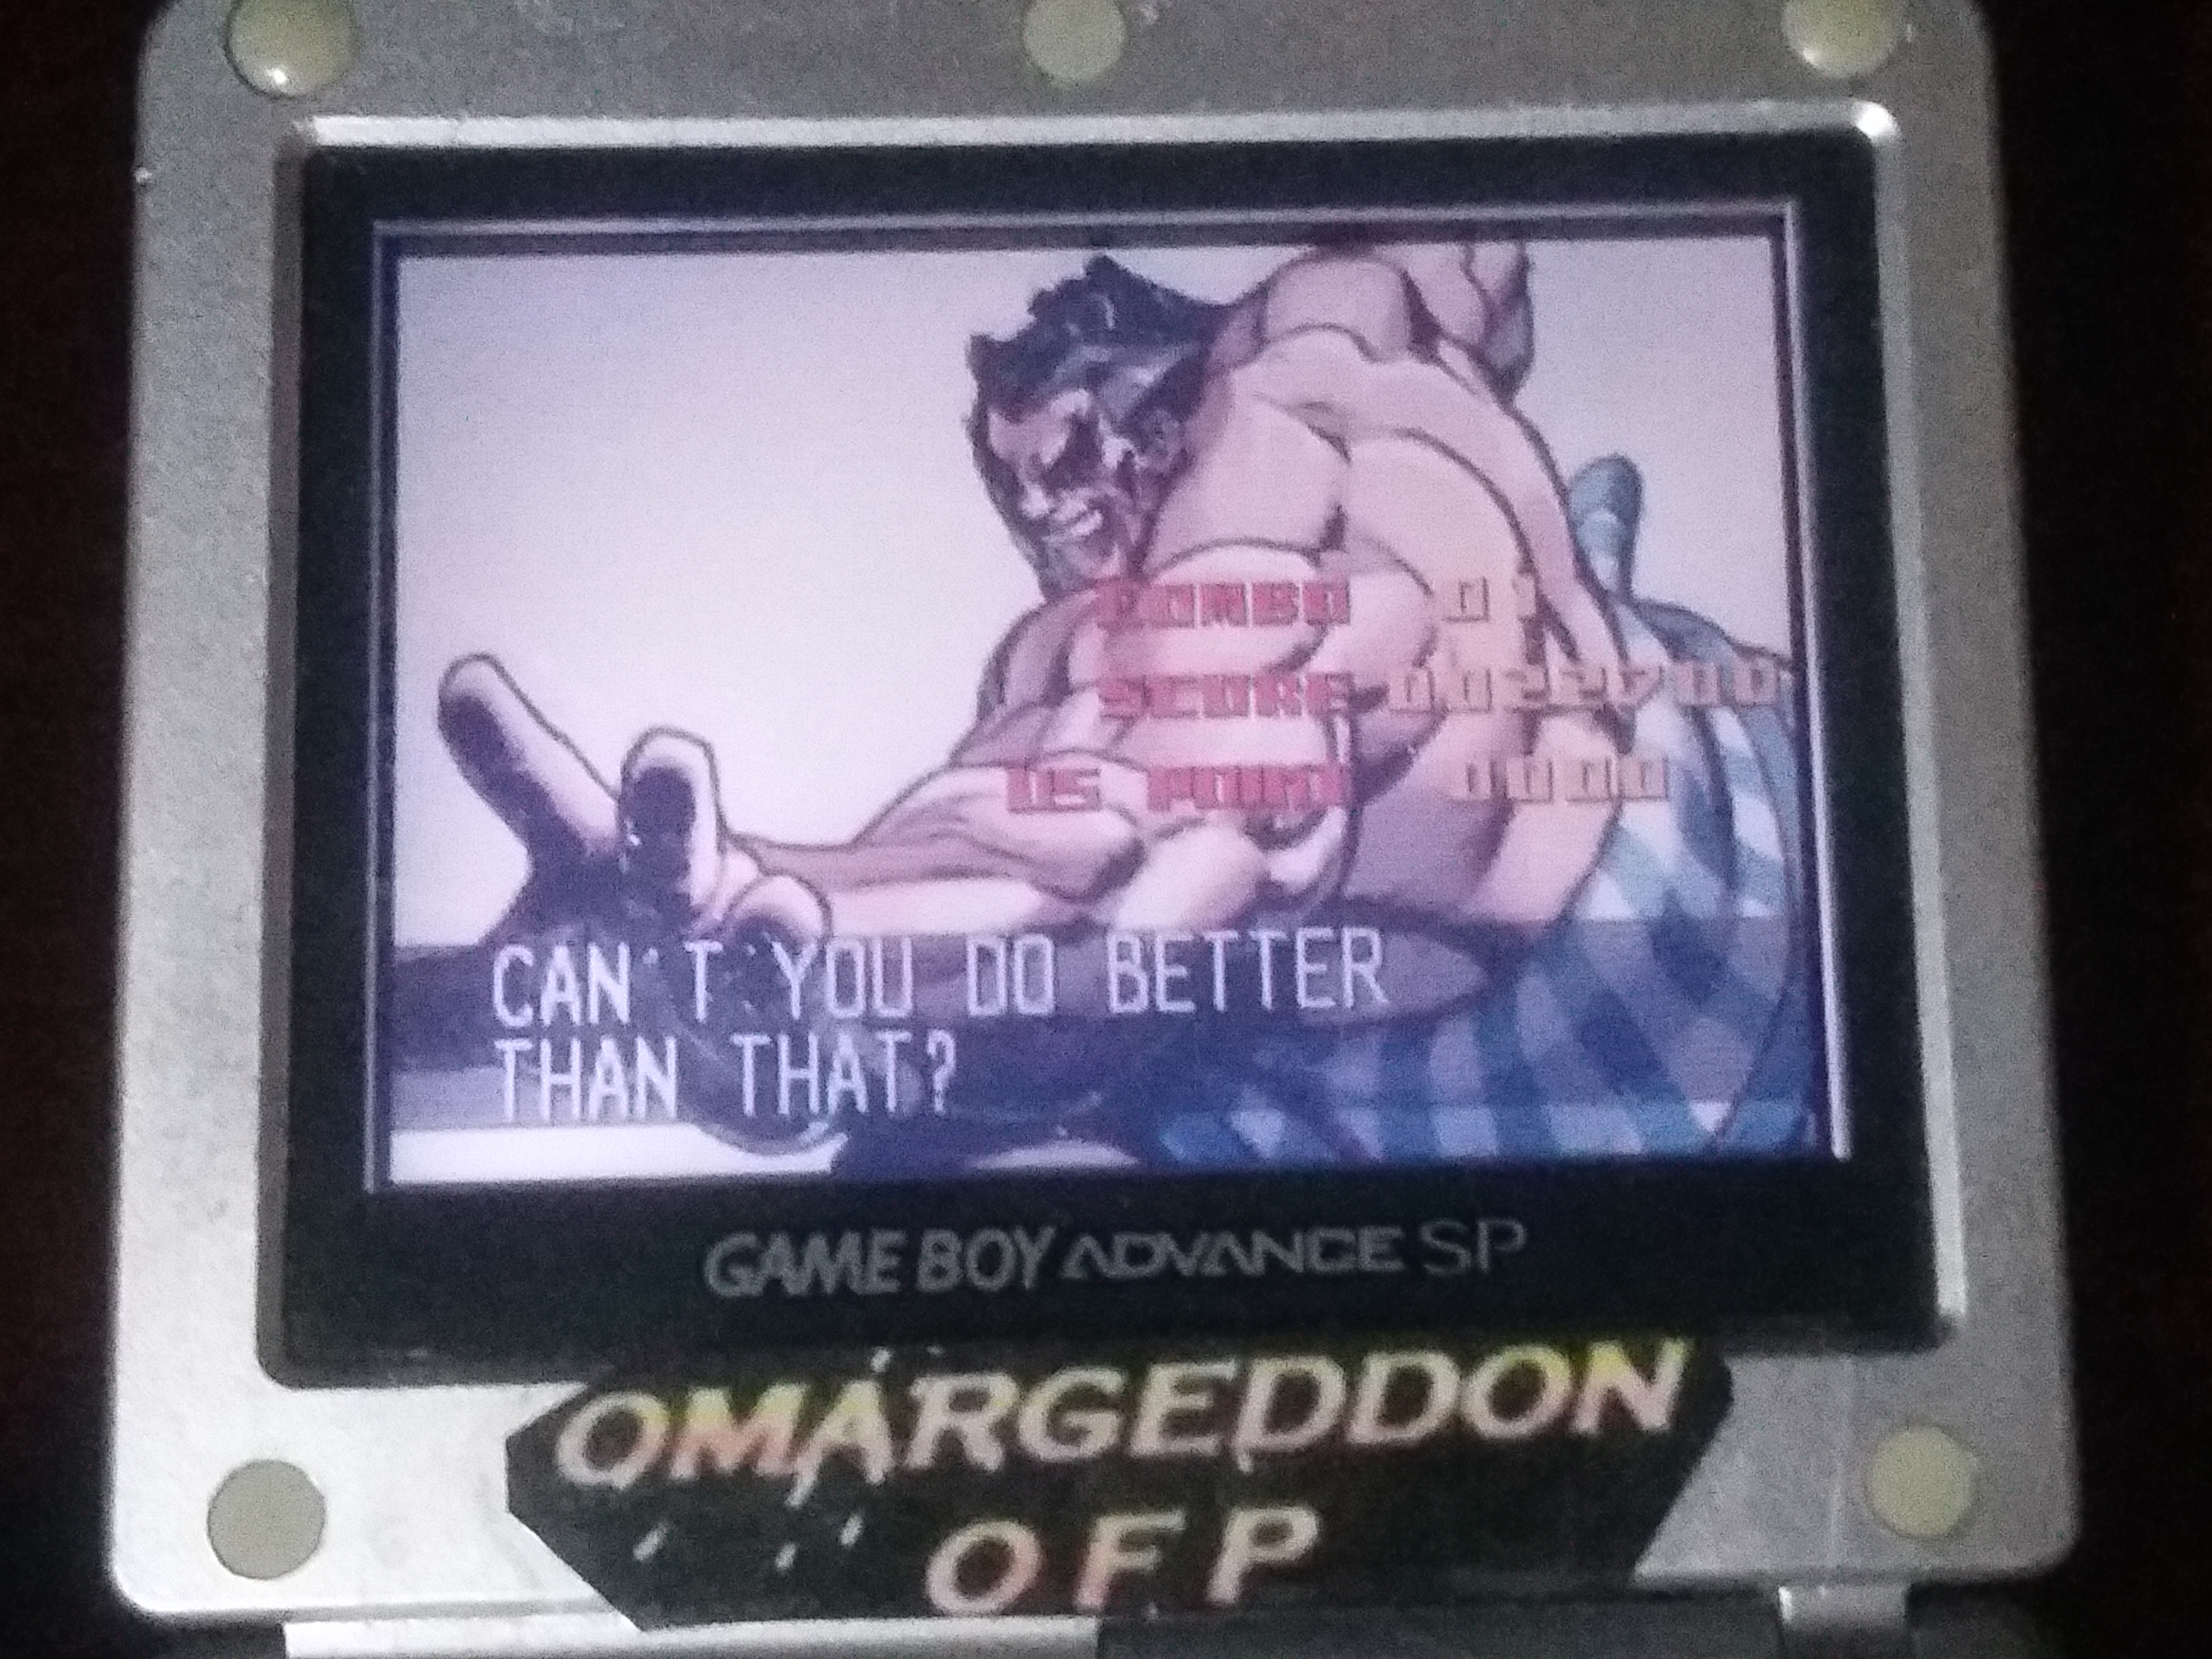 omargeddon: Super Street Fighter II Turbo Revival [Arcade Mode / Difficulty: Level 7] (GBA) 22,700 points on 2018-01-17 15:46:13